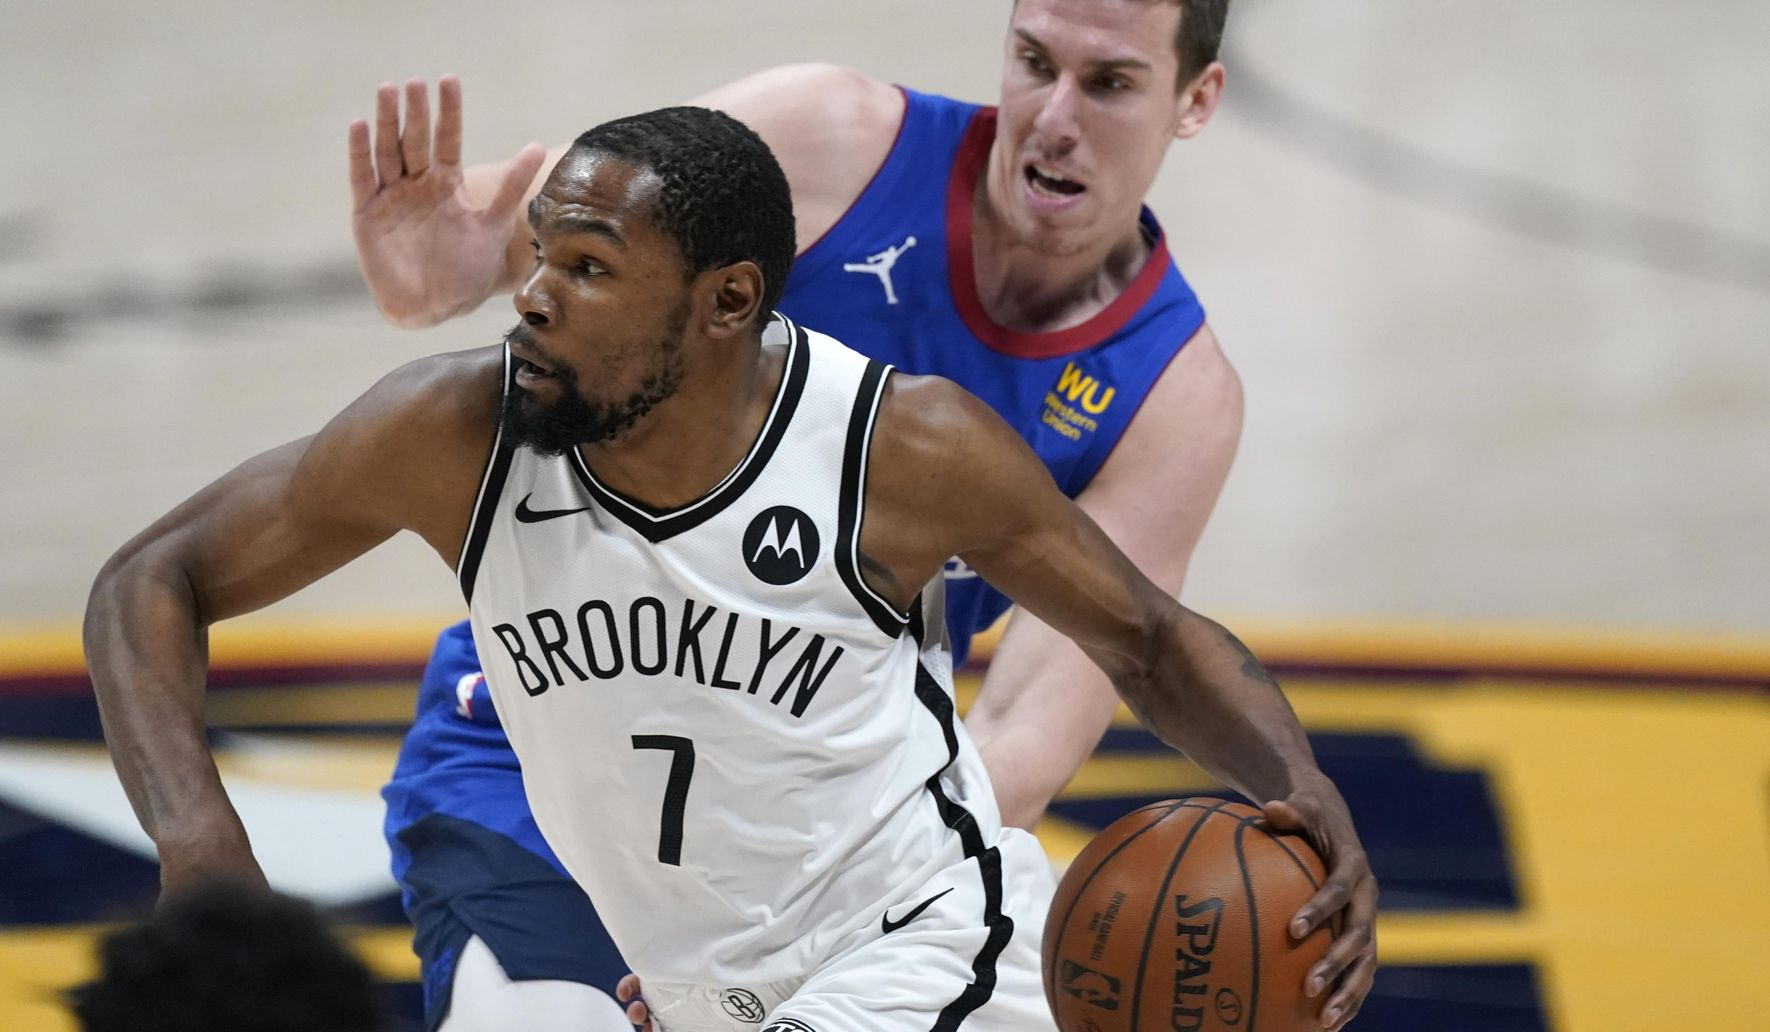 Nets_nuggets_basketball_22232_c0-444-5213-3483_s1770x1032